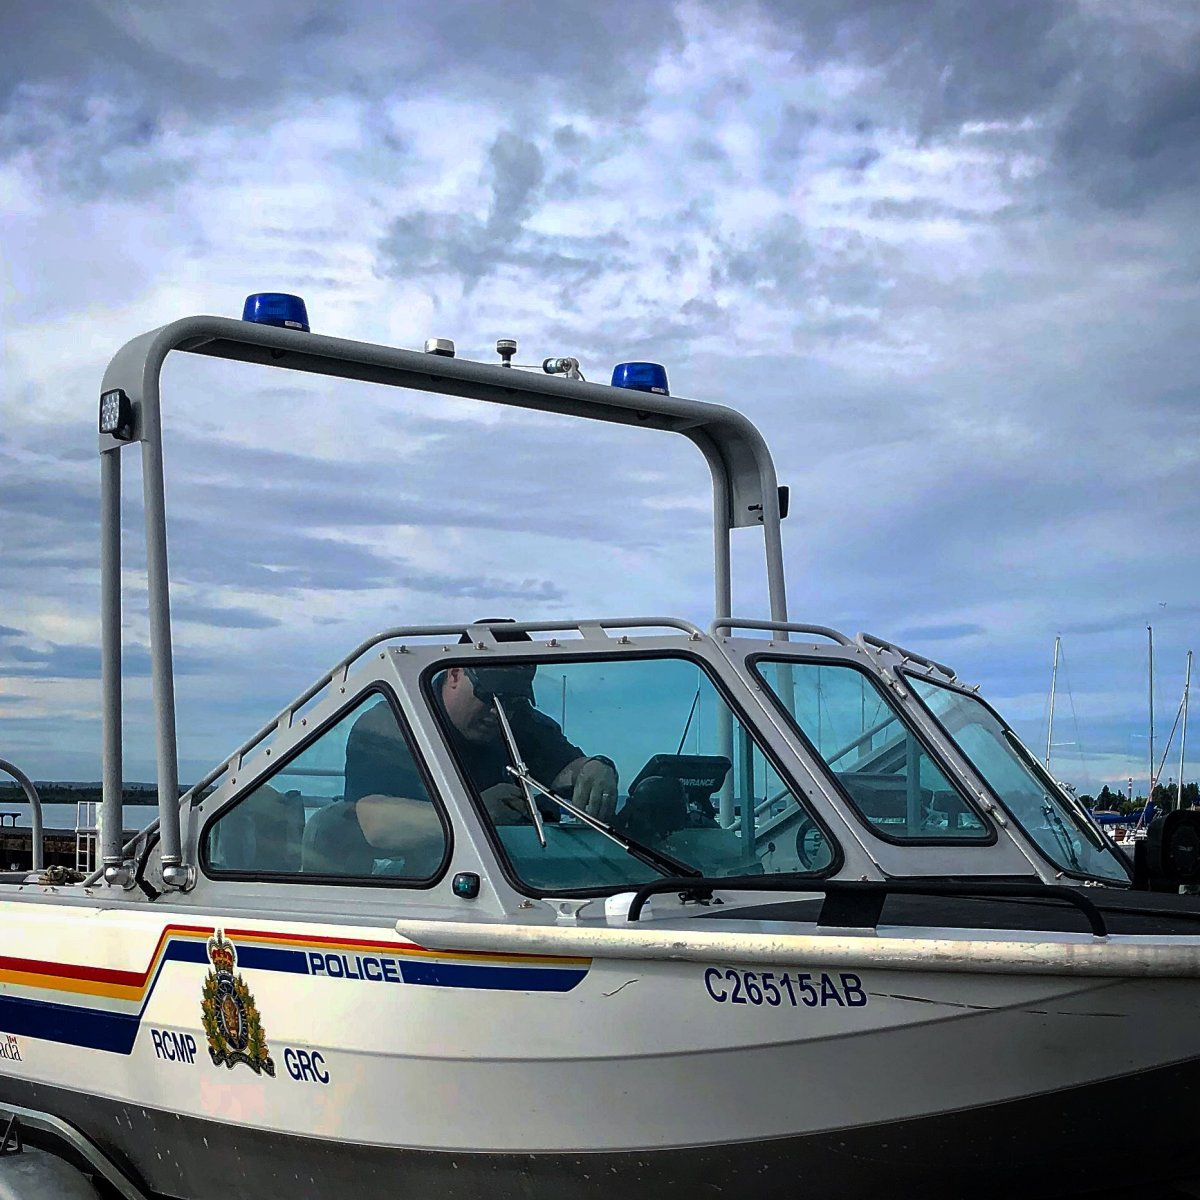 A RCMP officer on patrol in July 2020.